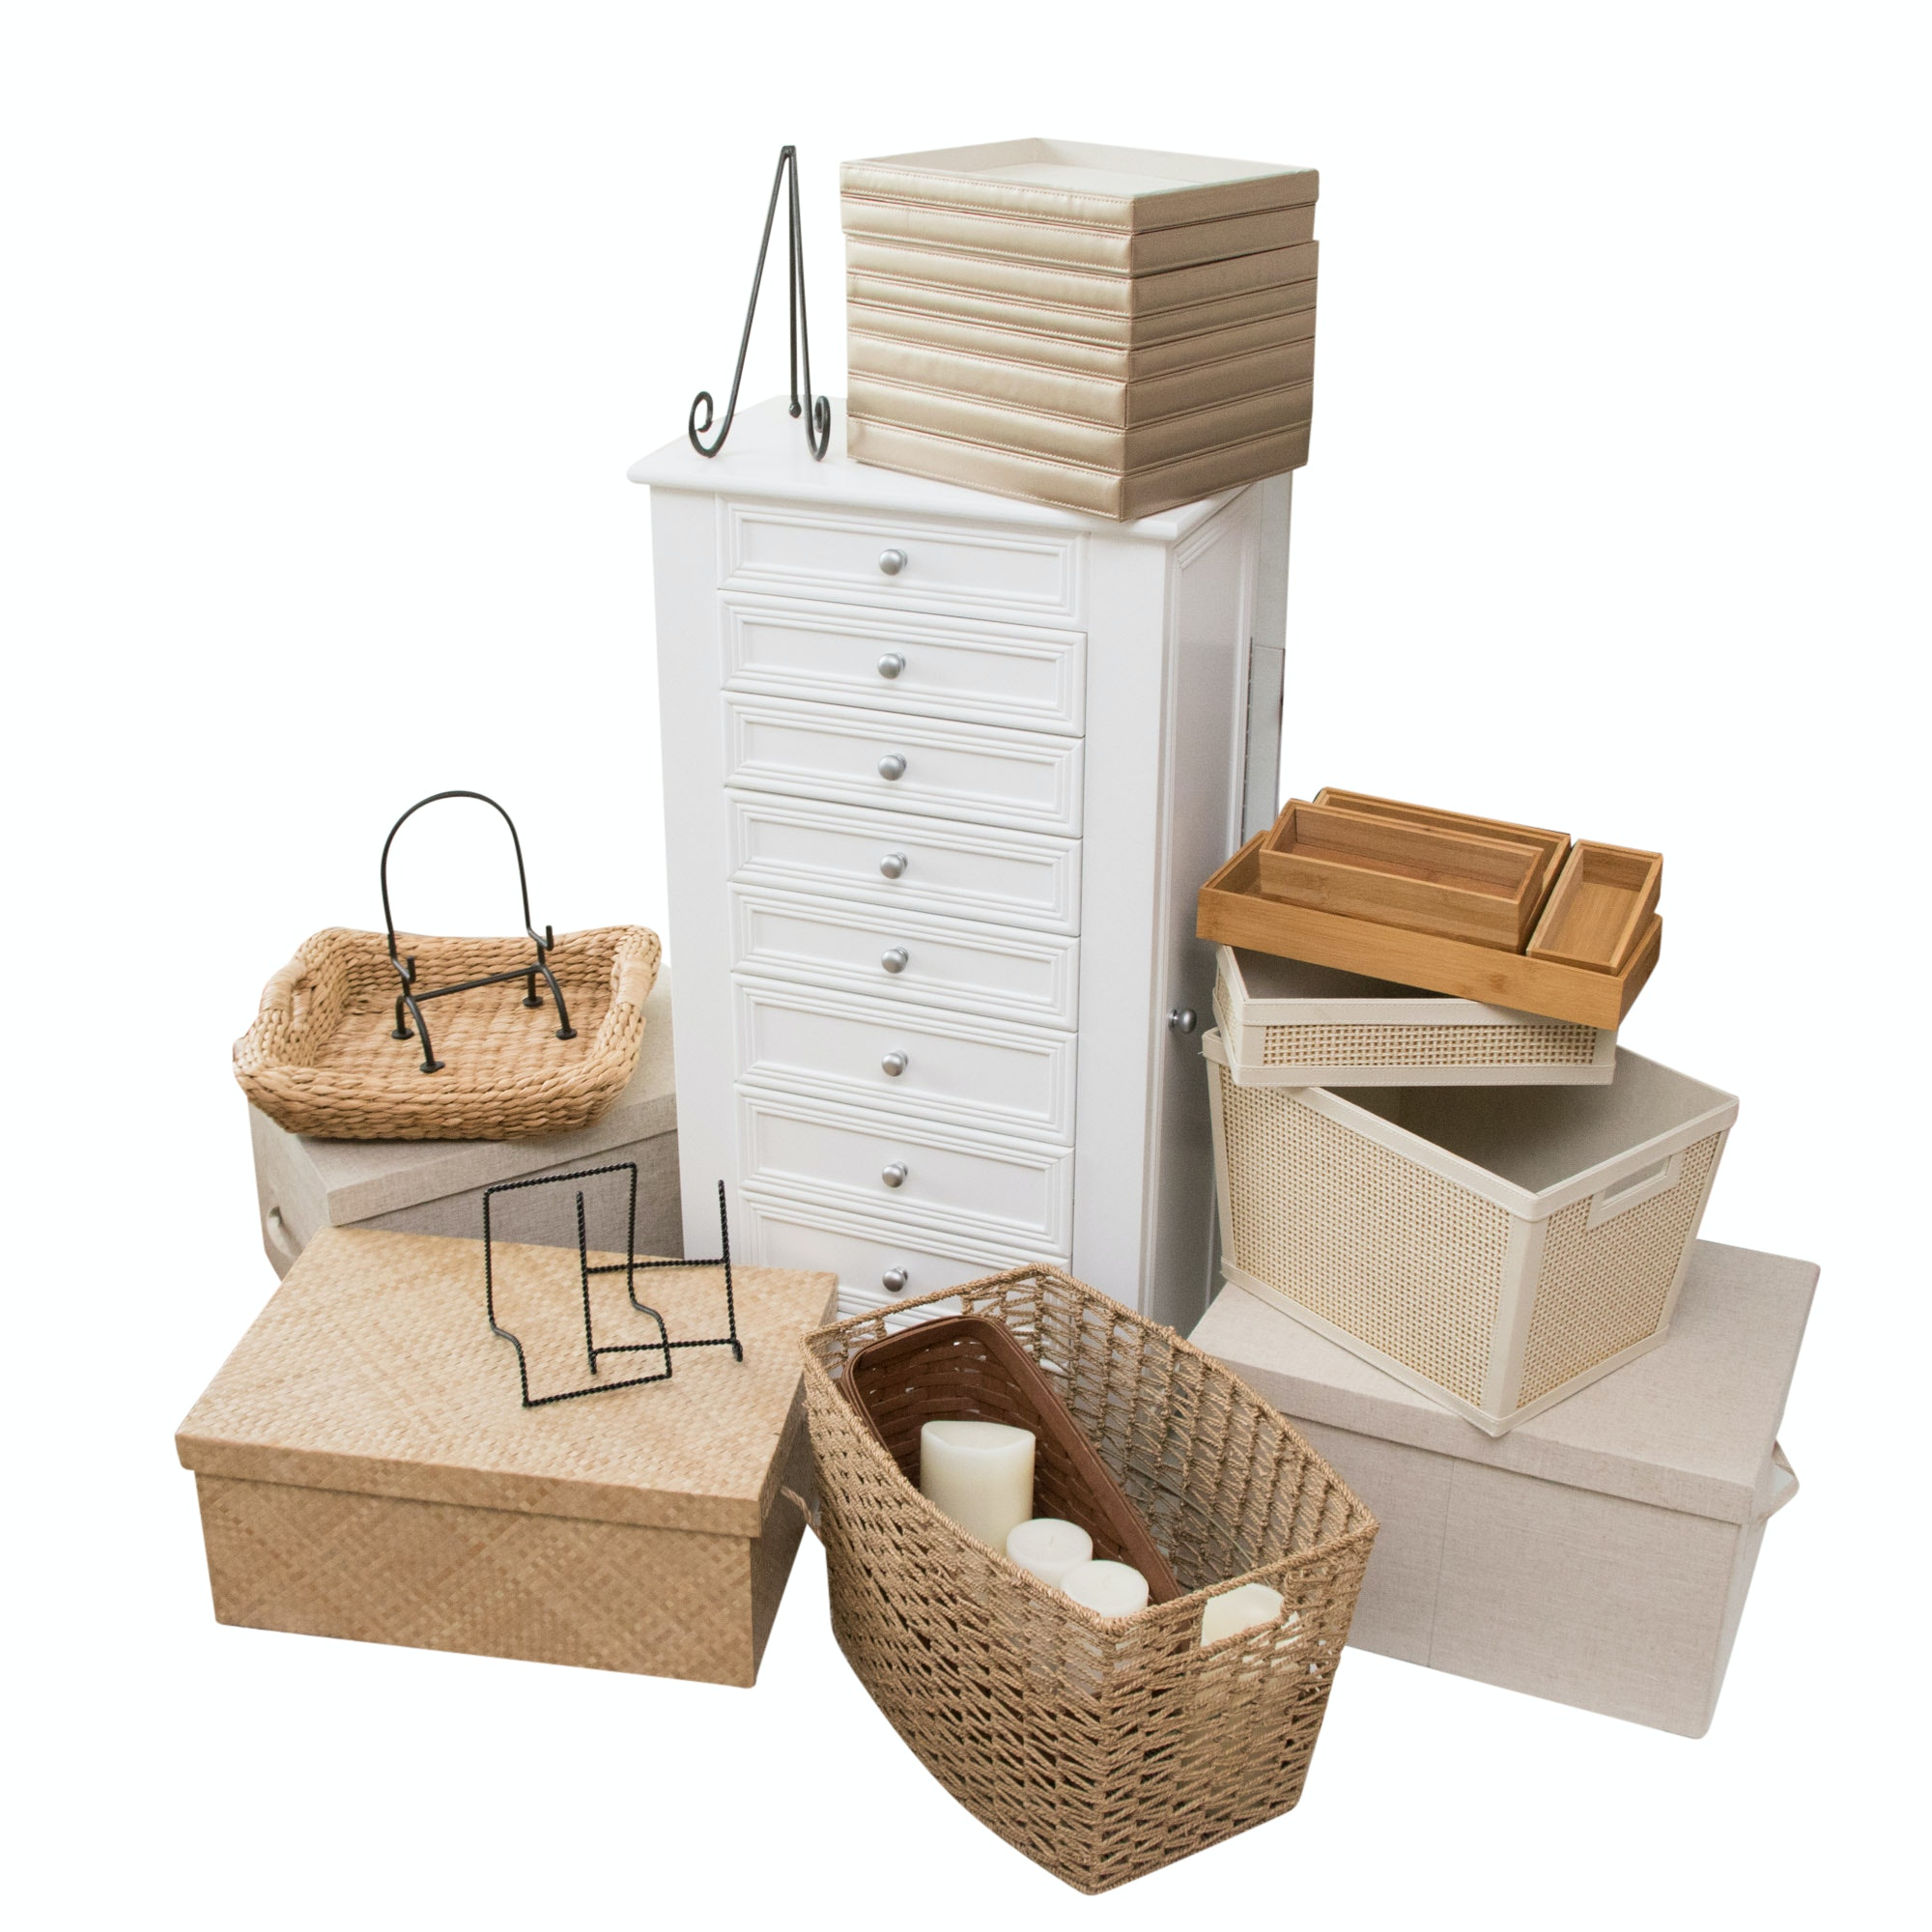 Collection of Organizational Storage